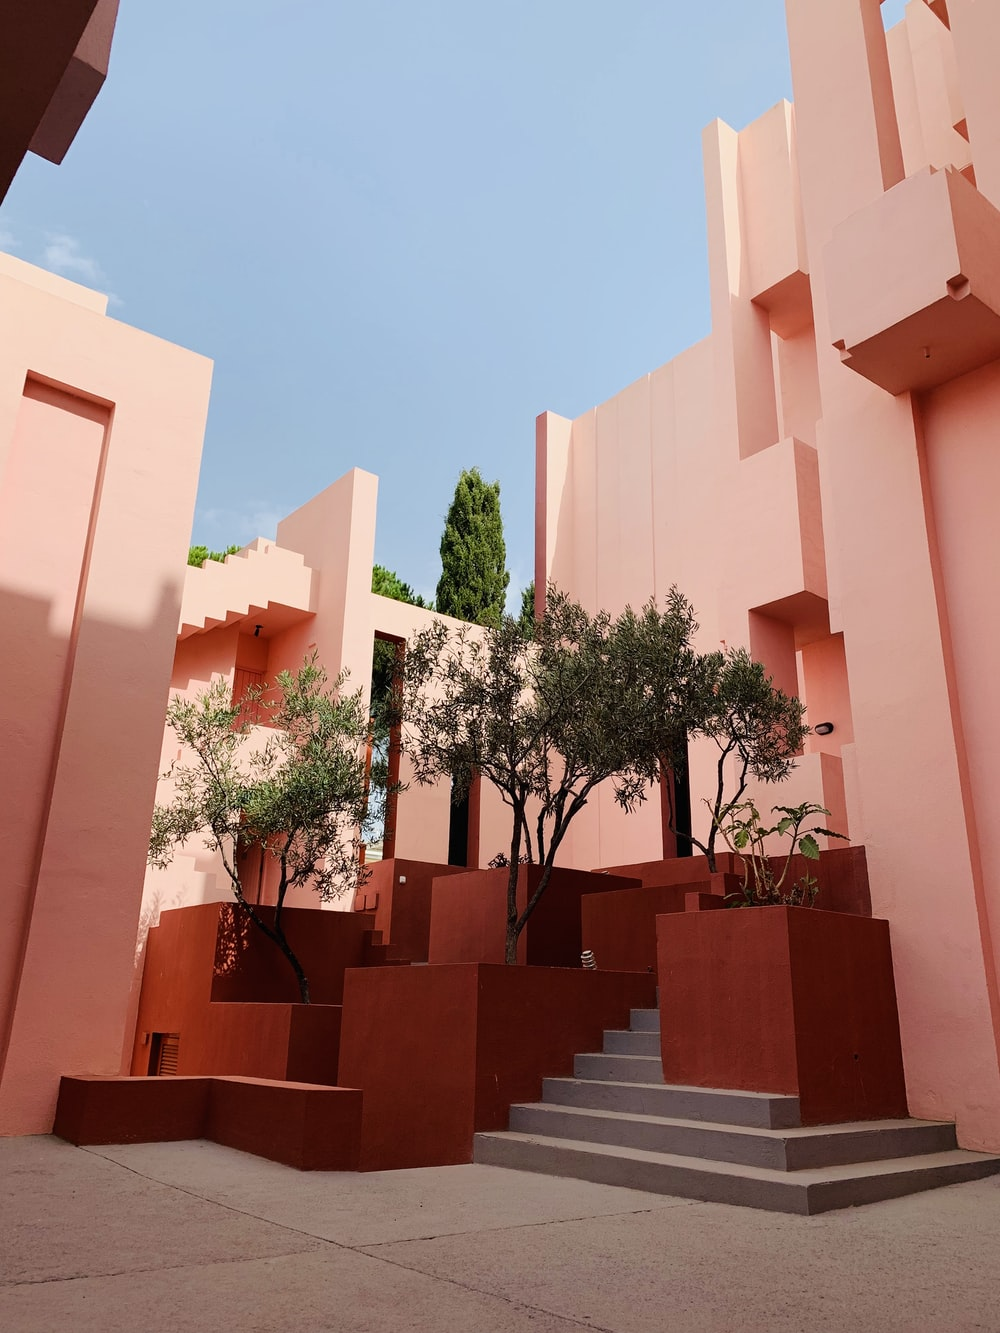 green leafed trees near pink buildings